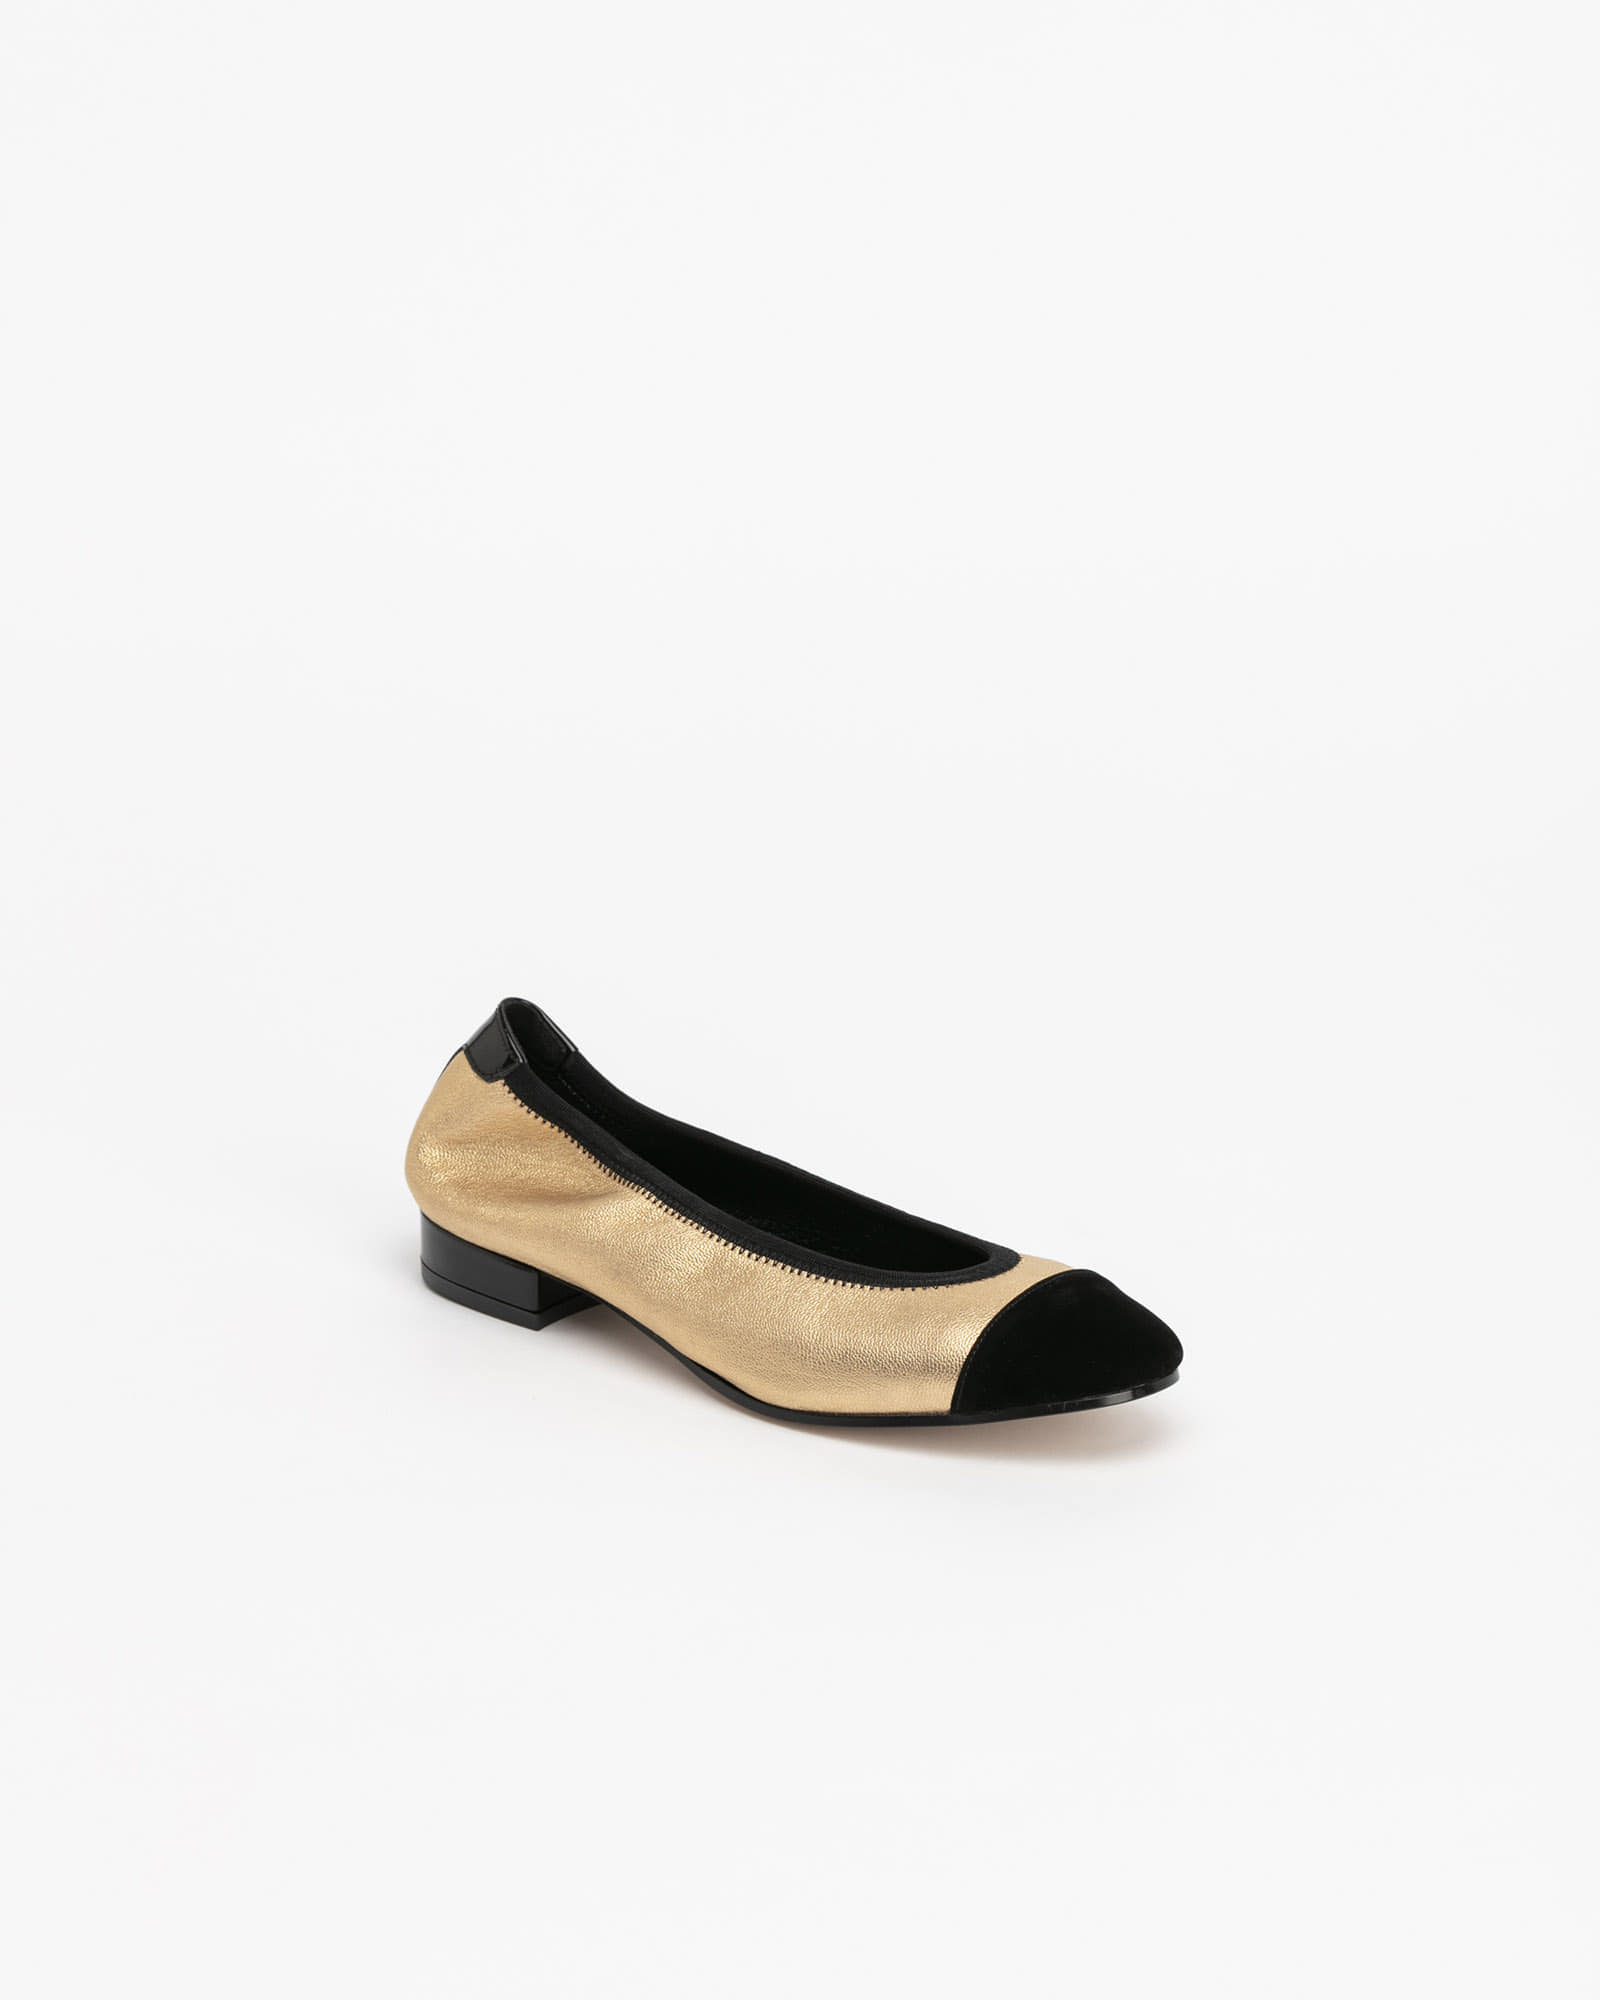 D'amore Flat Shoes in Gold with Black Toe